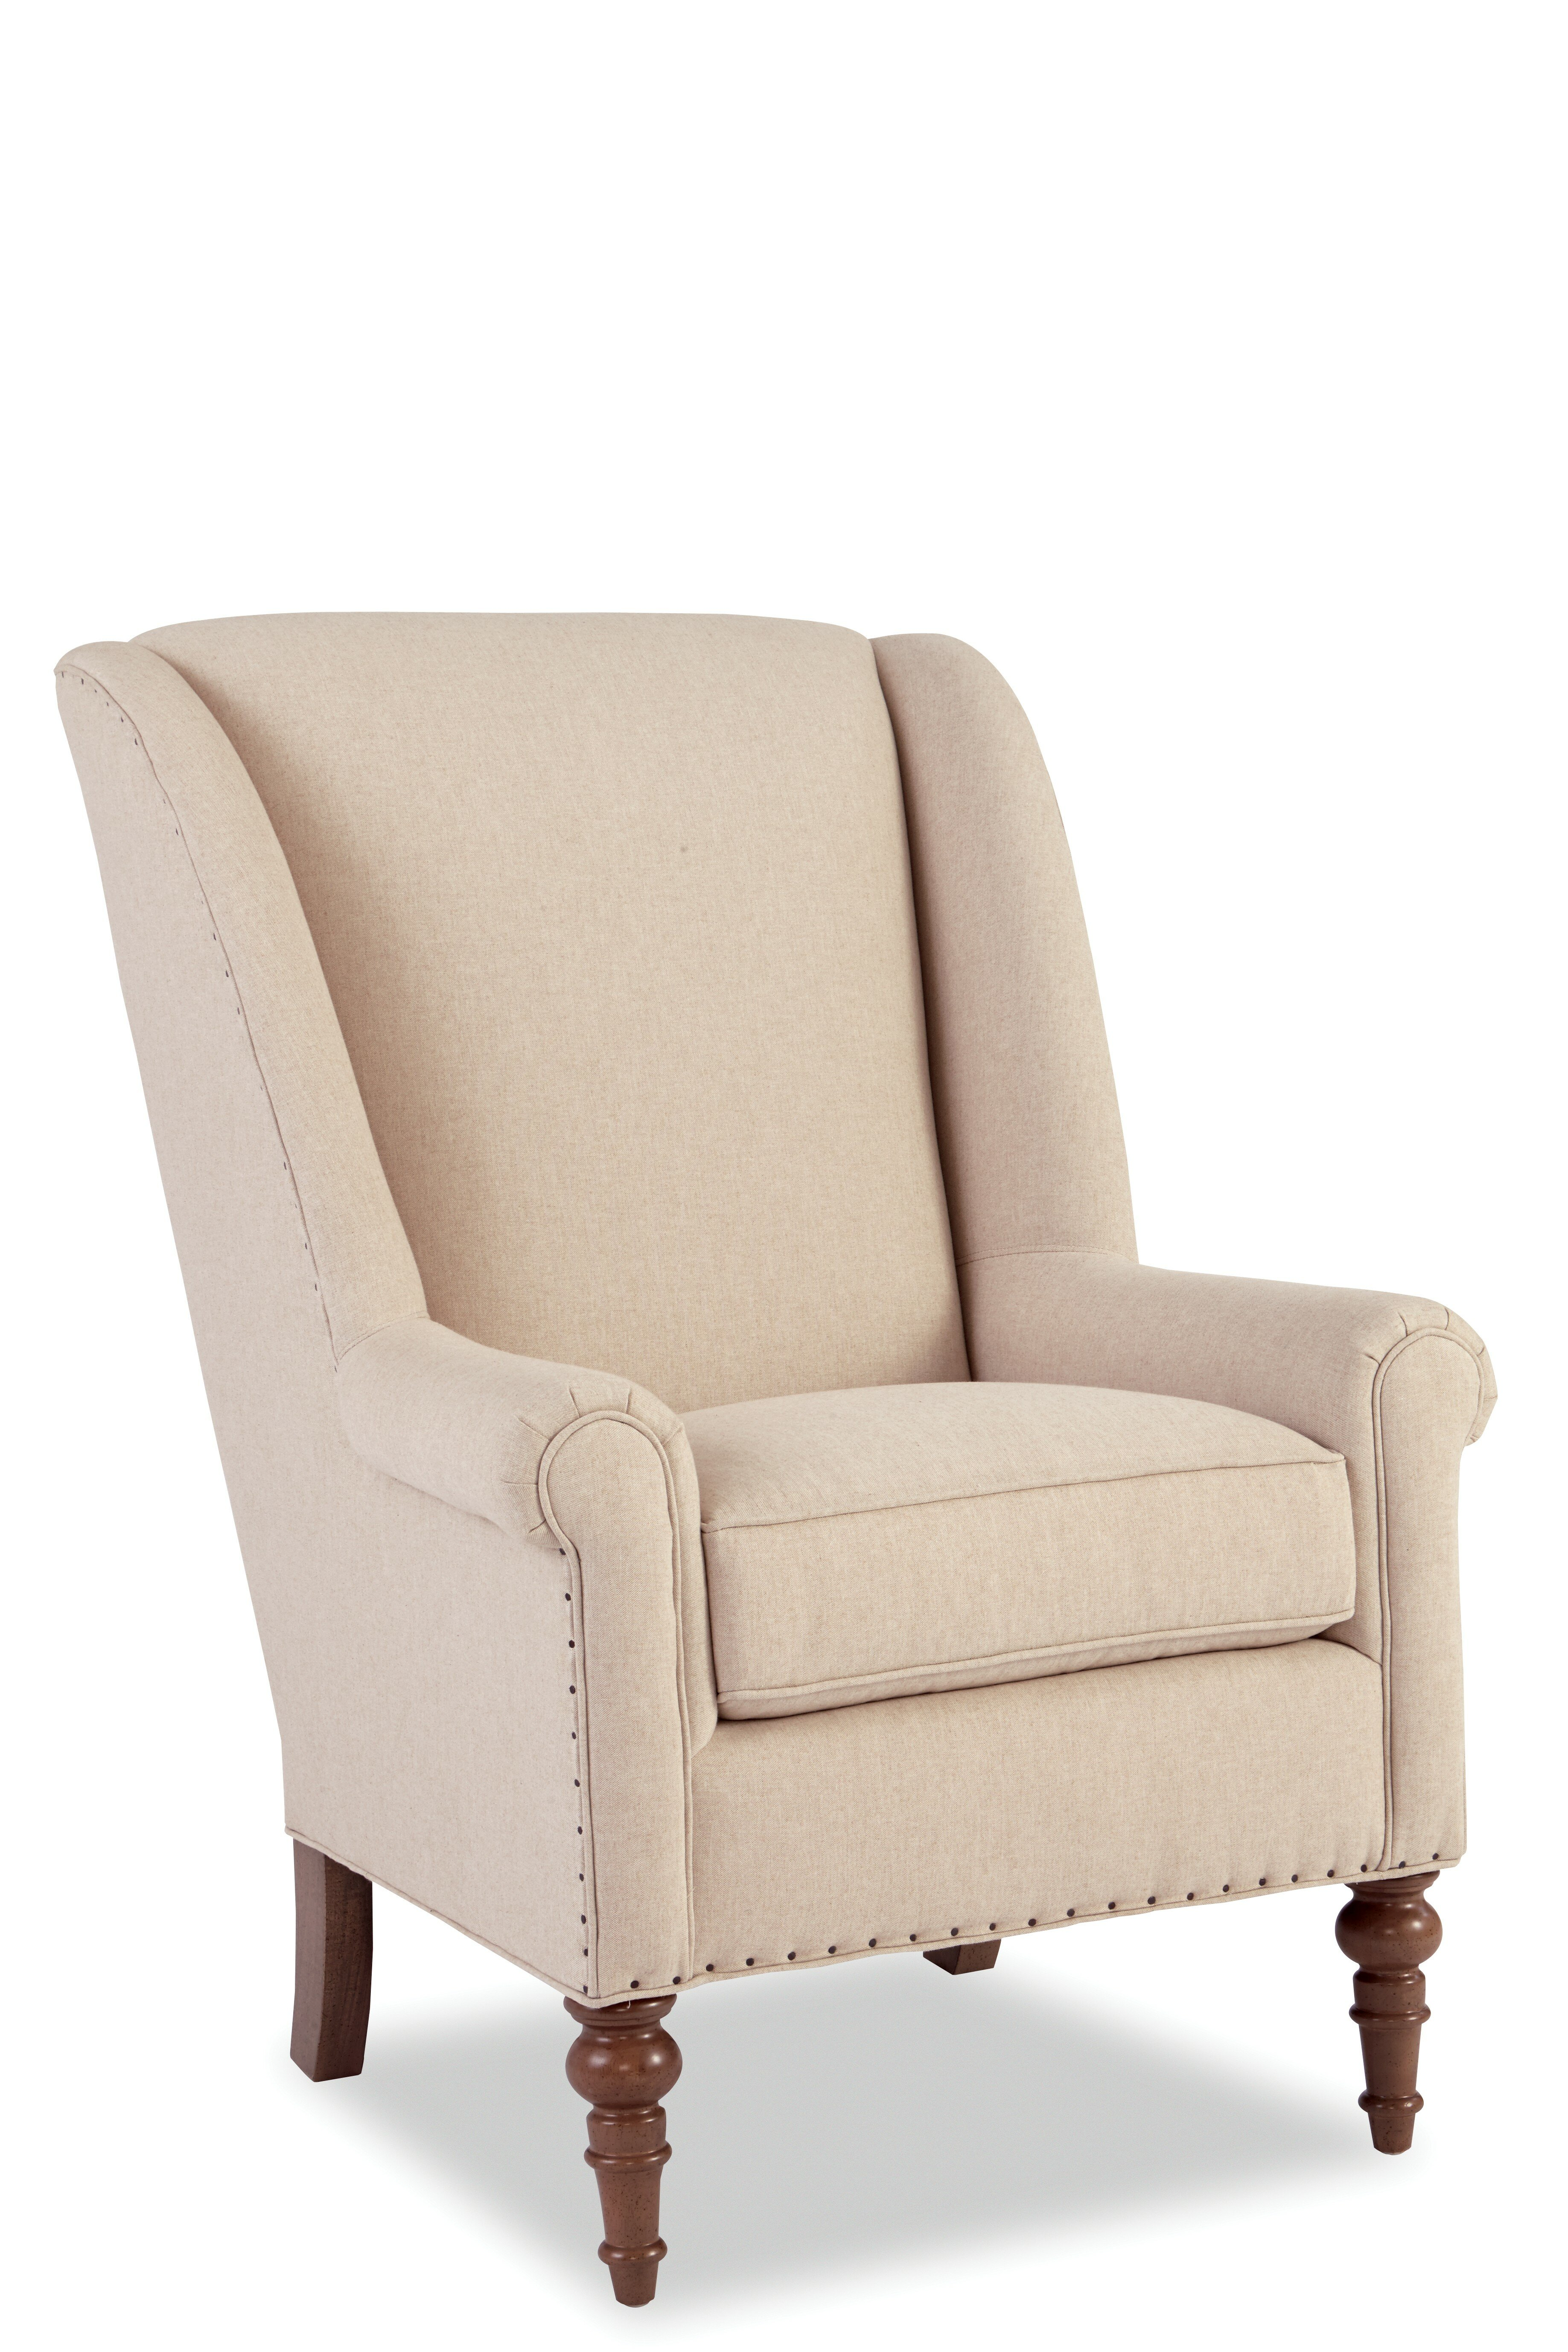 Craftmaster Montford Wingback Chair